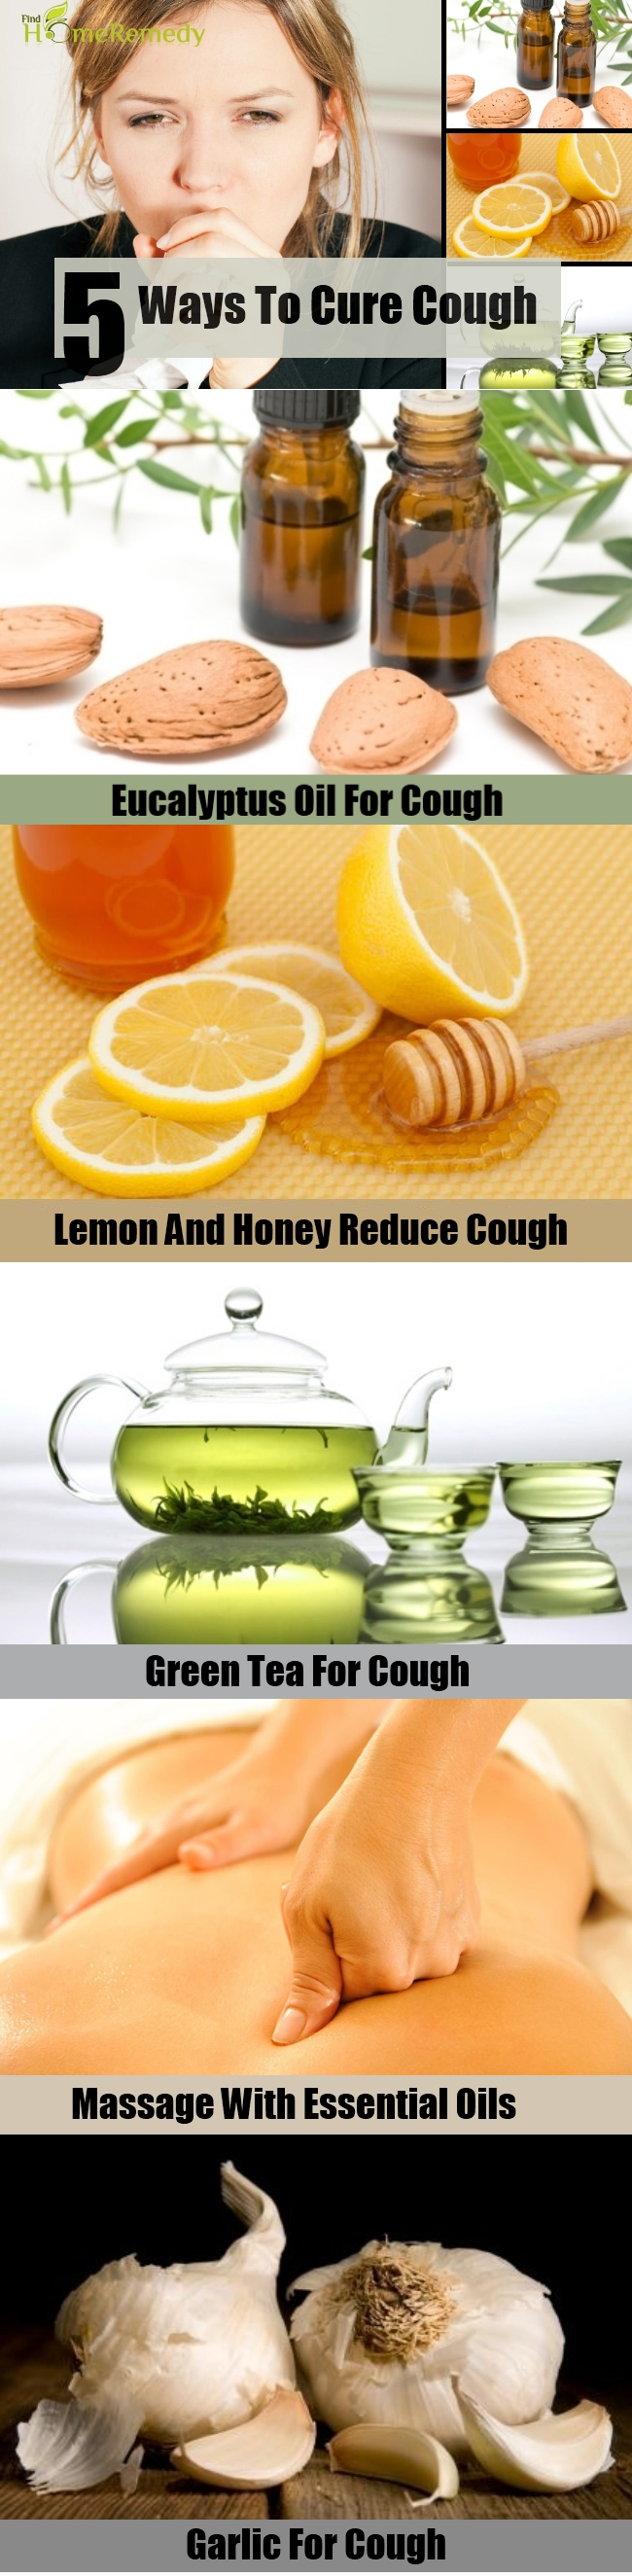 5 Ways To Cure Cough